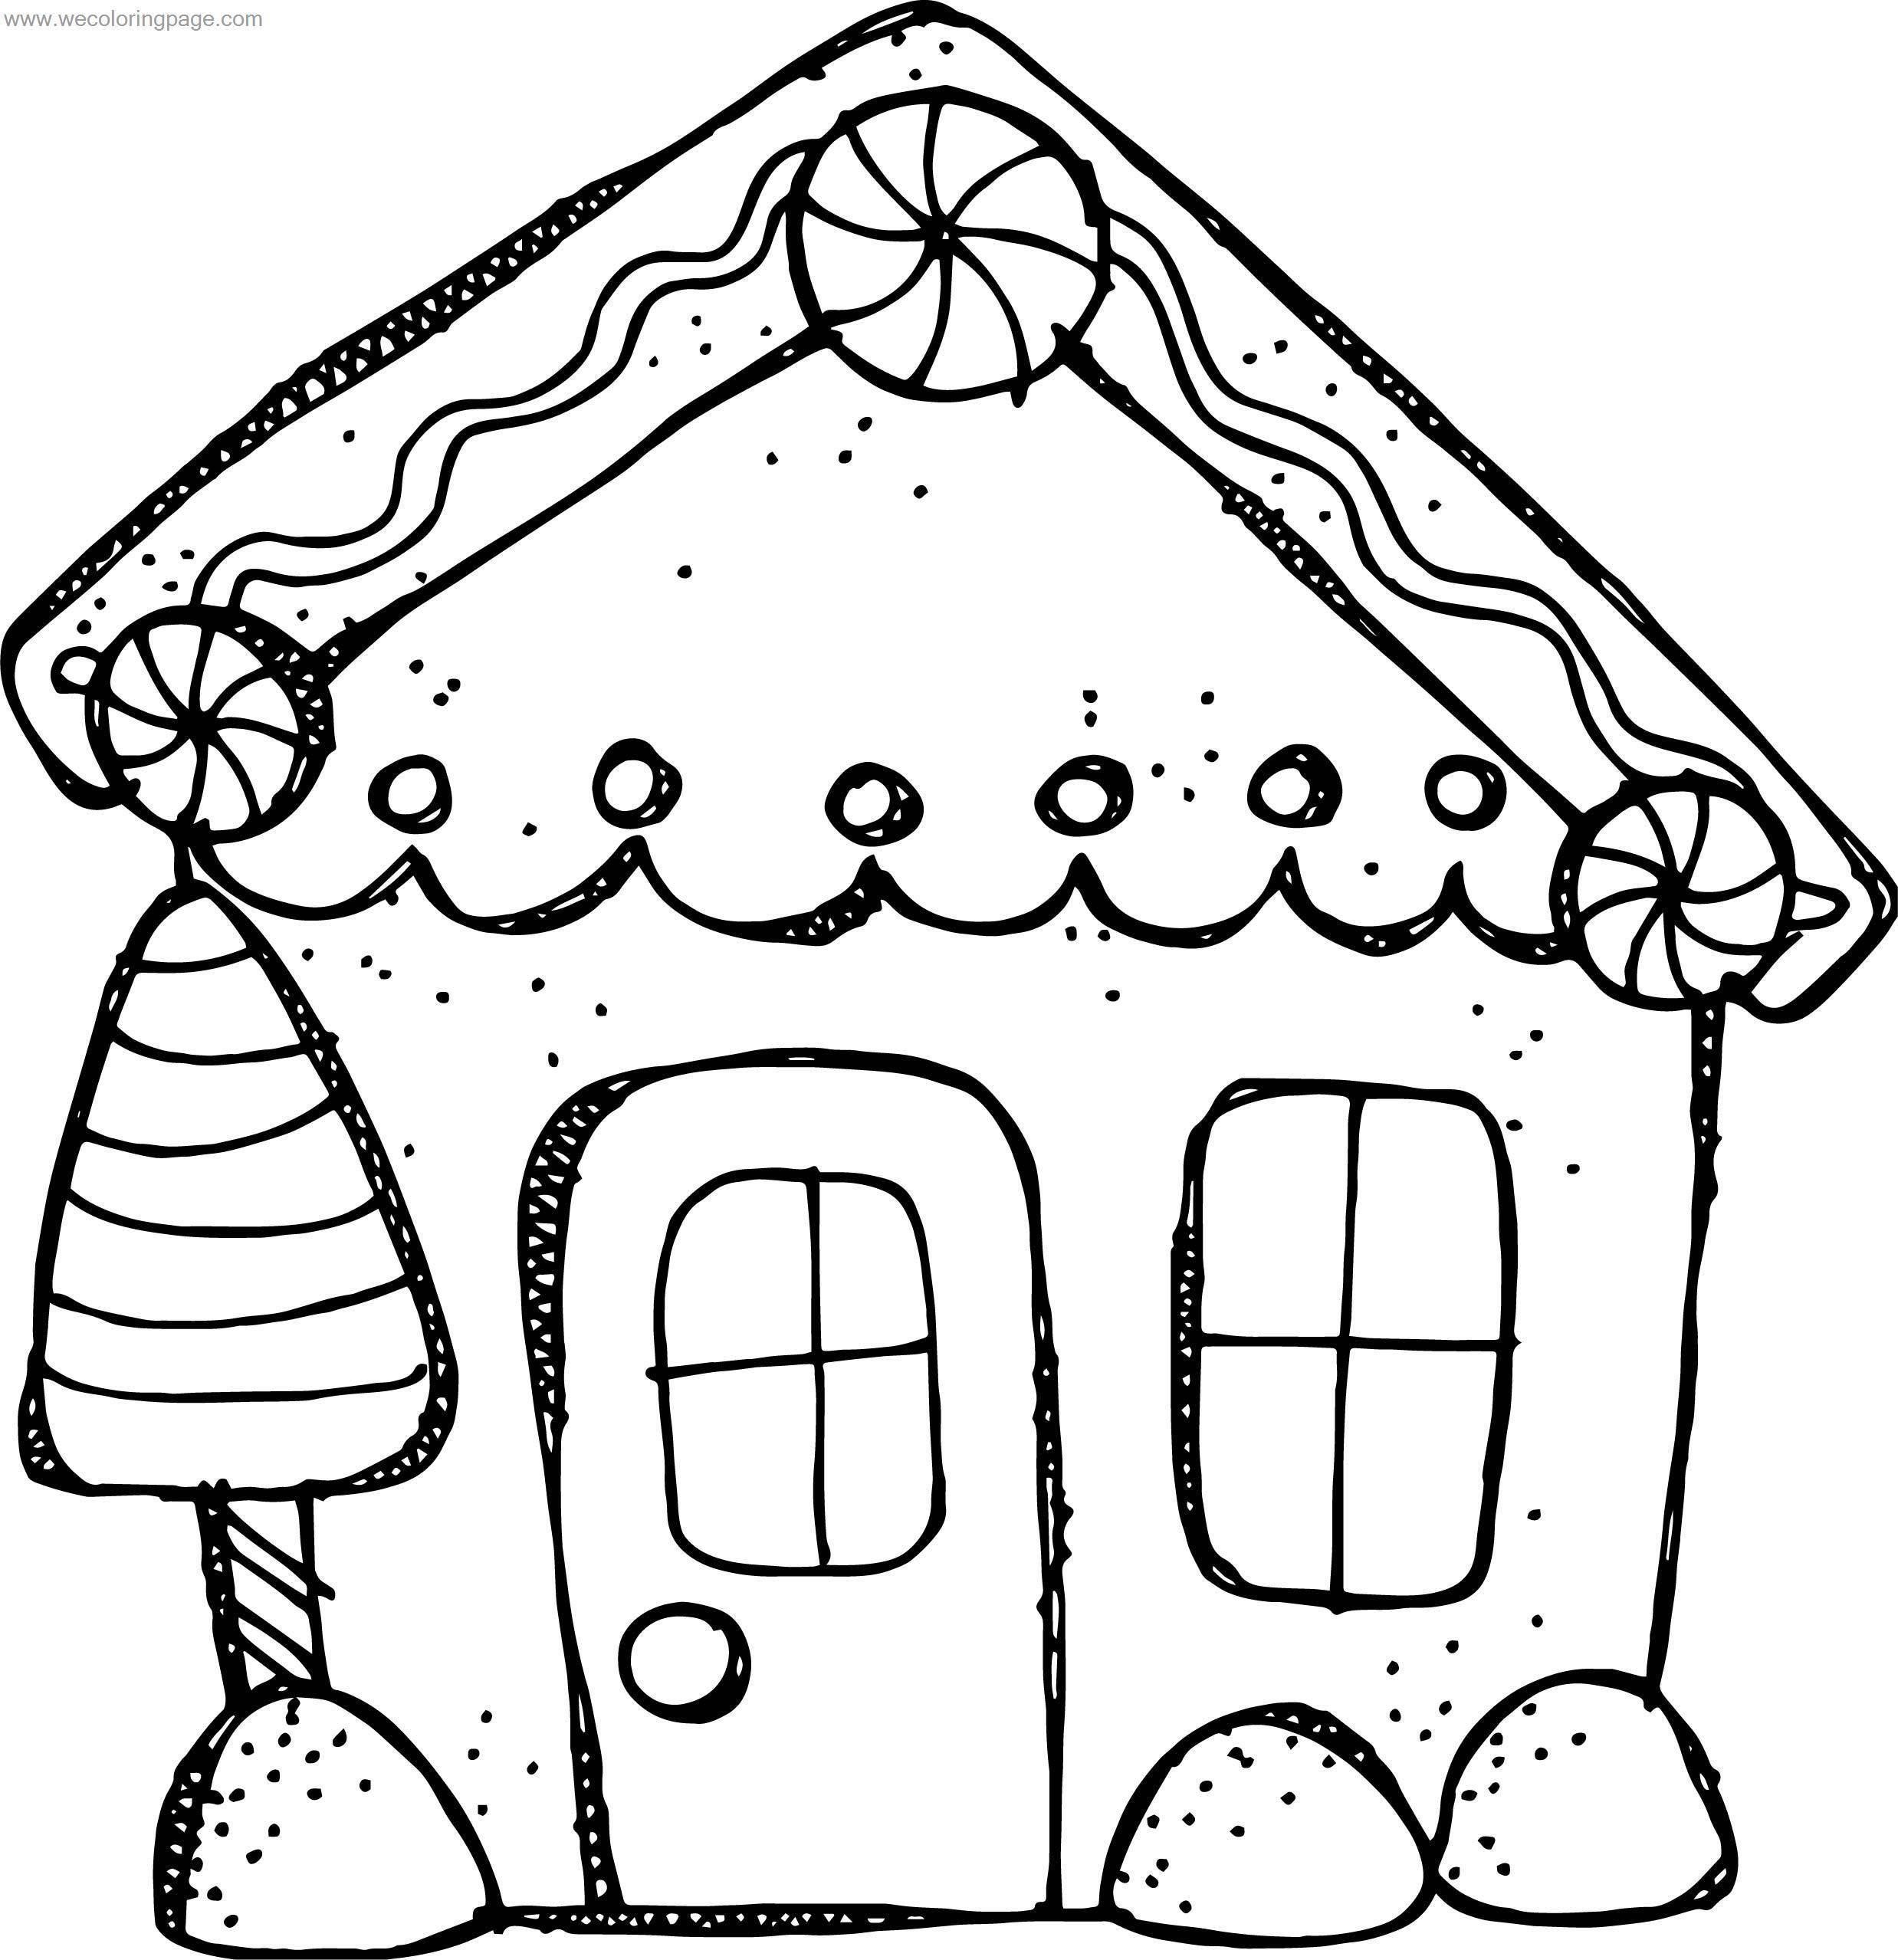 Preschool Gingerbread House Coloring Page